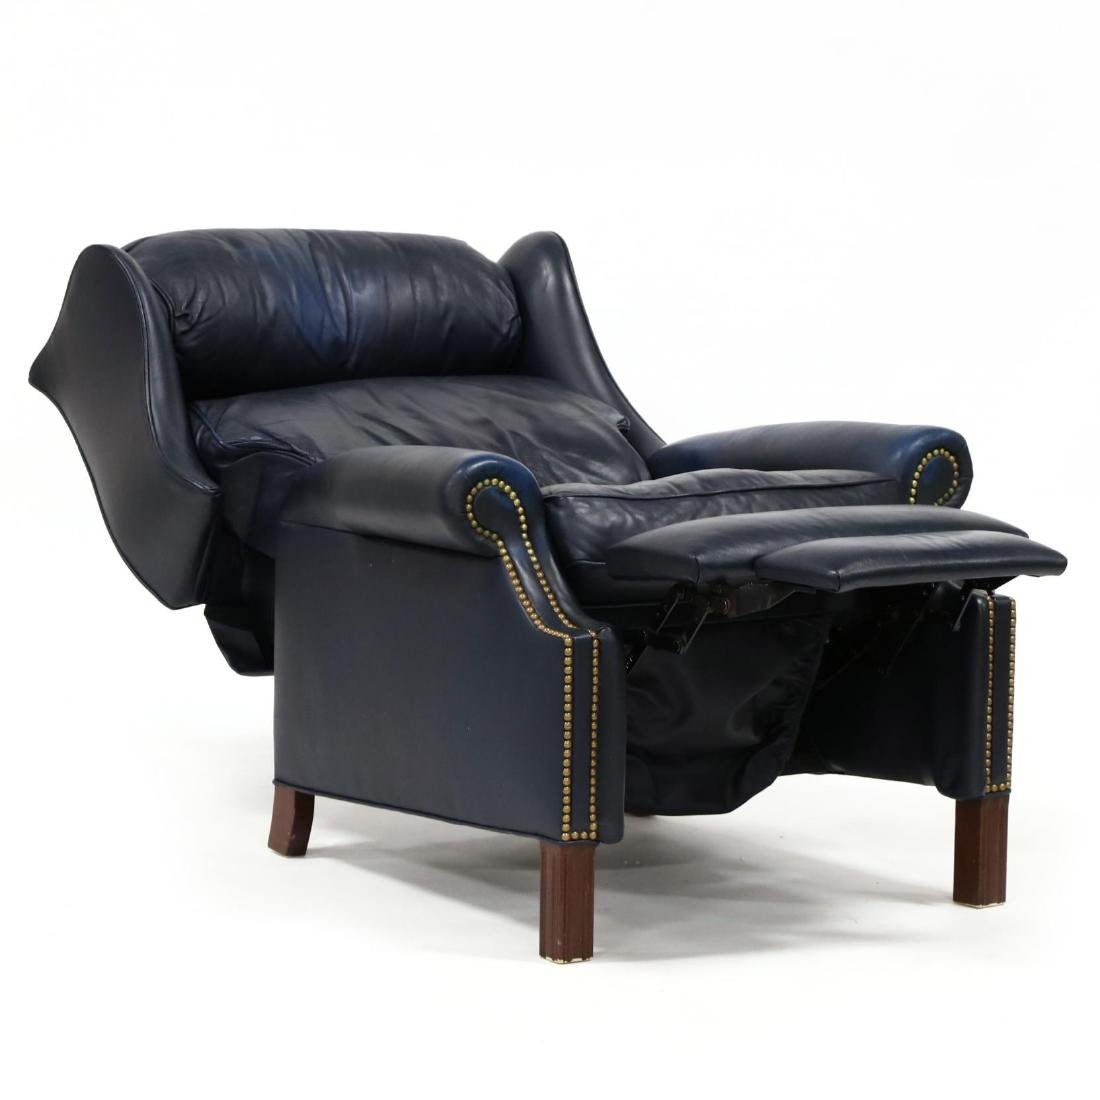 Hancock & Moore, Leather Upholstered Recliner - 2